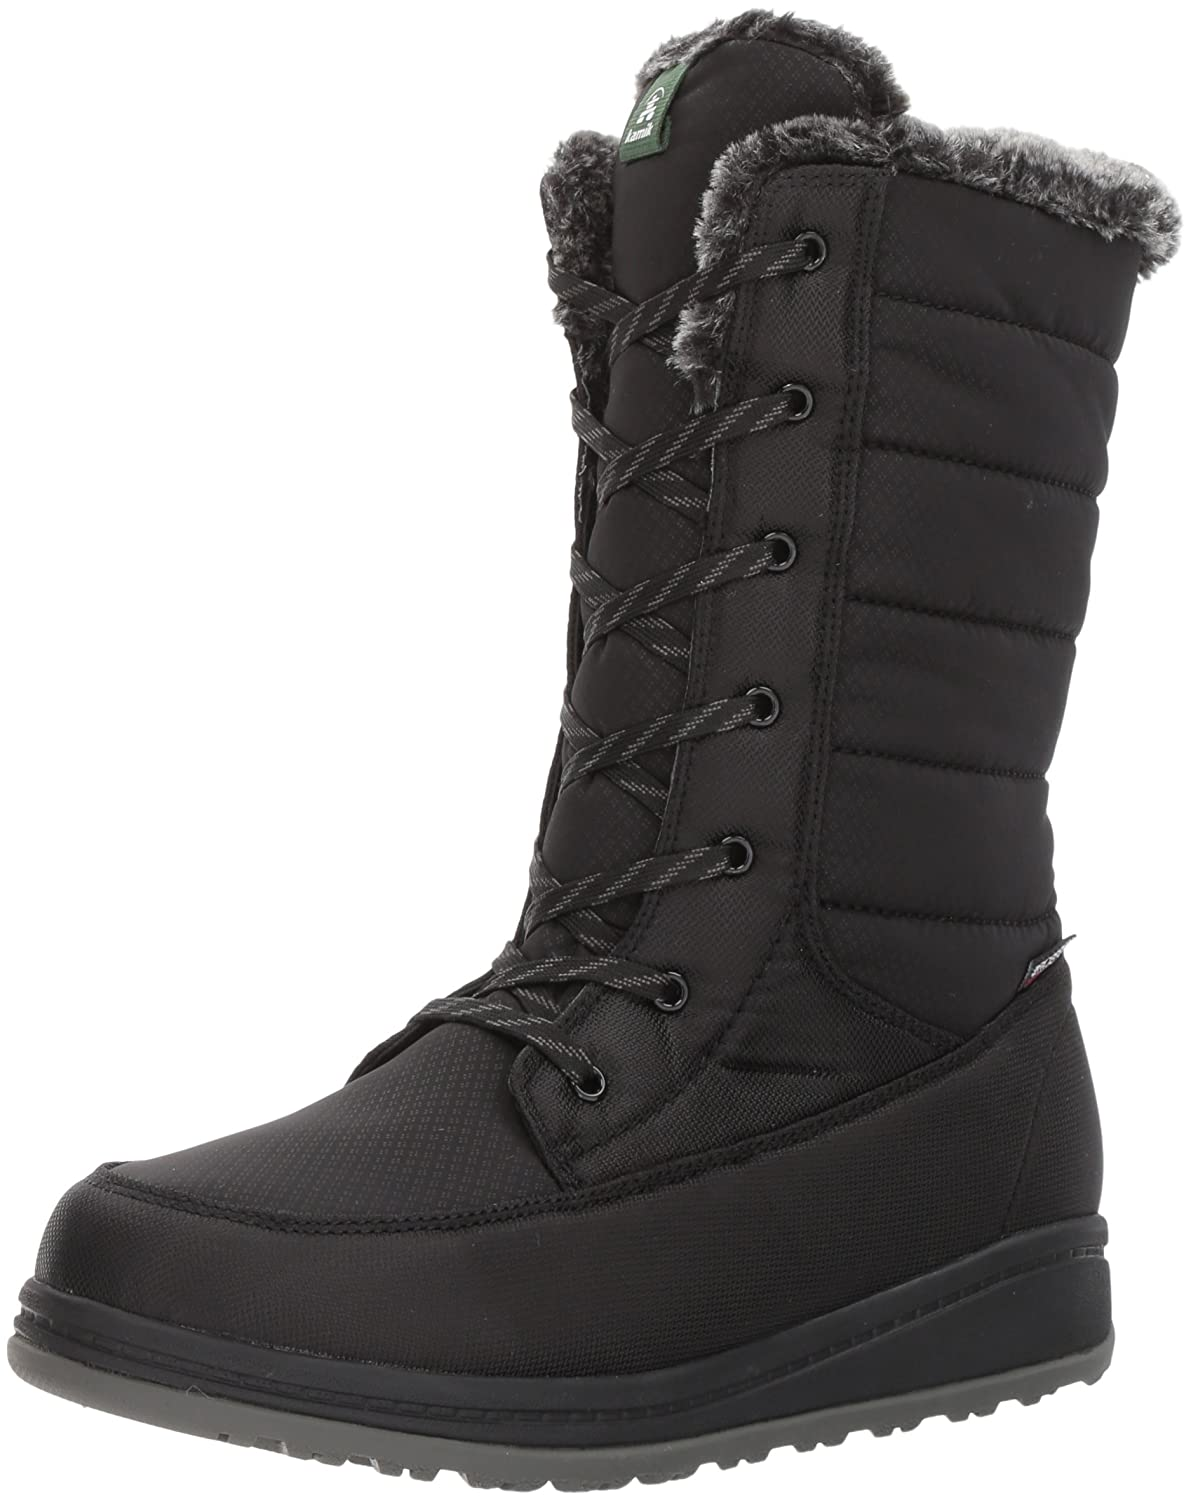 Kamik Women's Bailee Snow Boot B01MU5S8NO 7 D US|Black